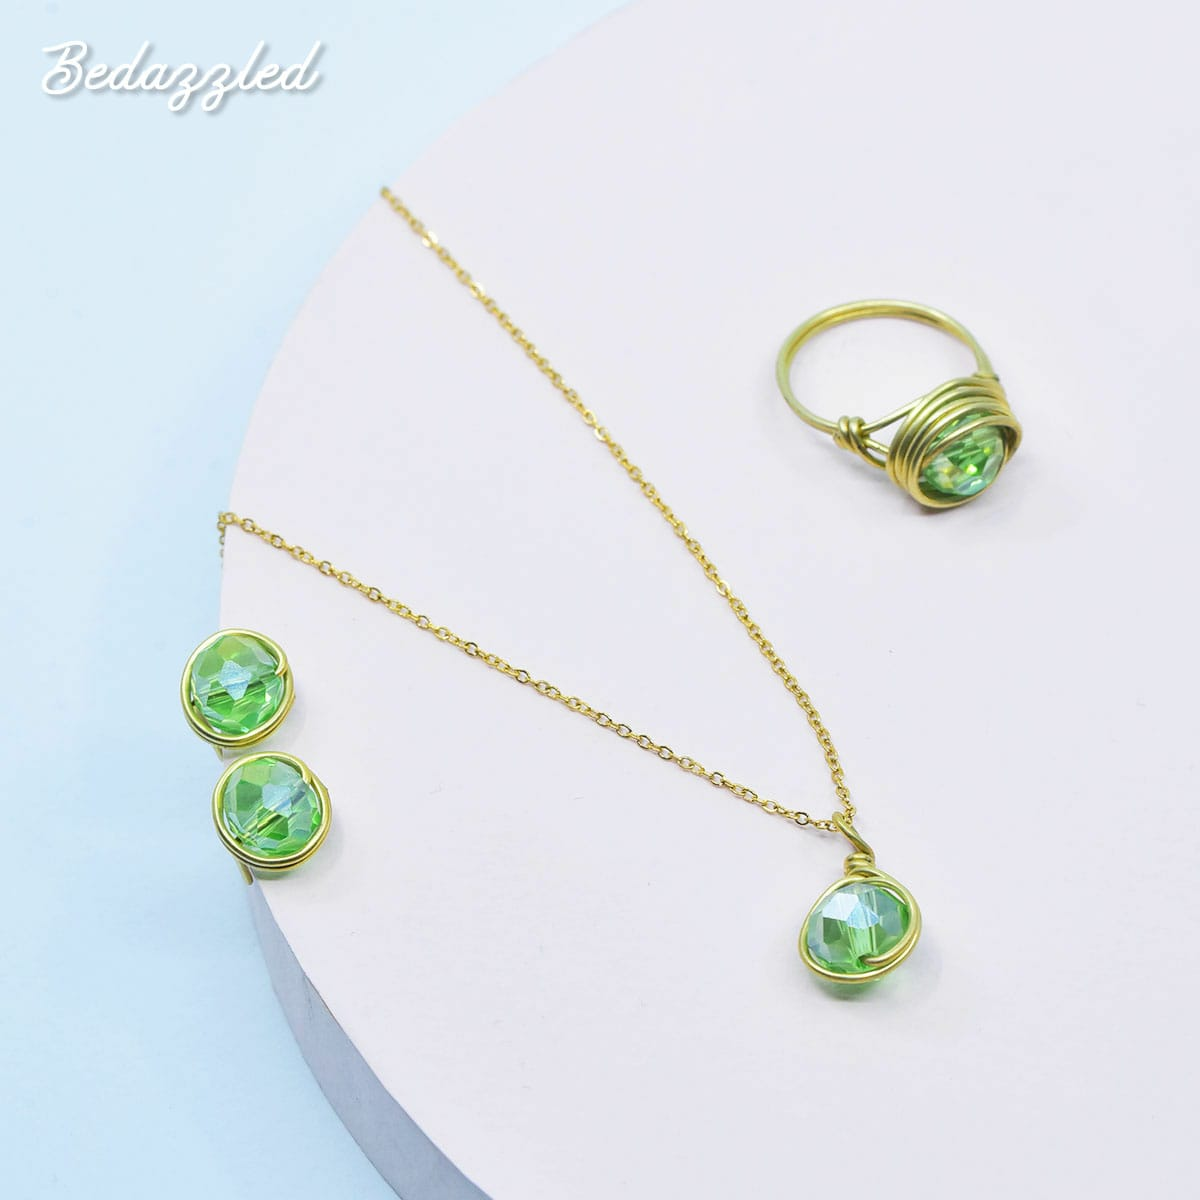 Bedazzling Green - Set of 3